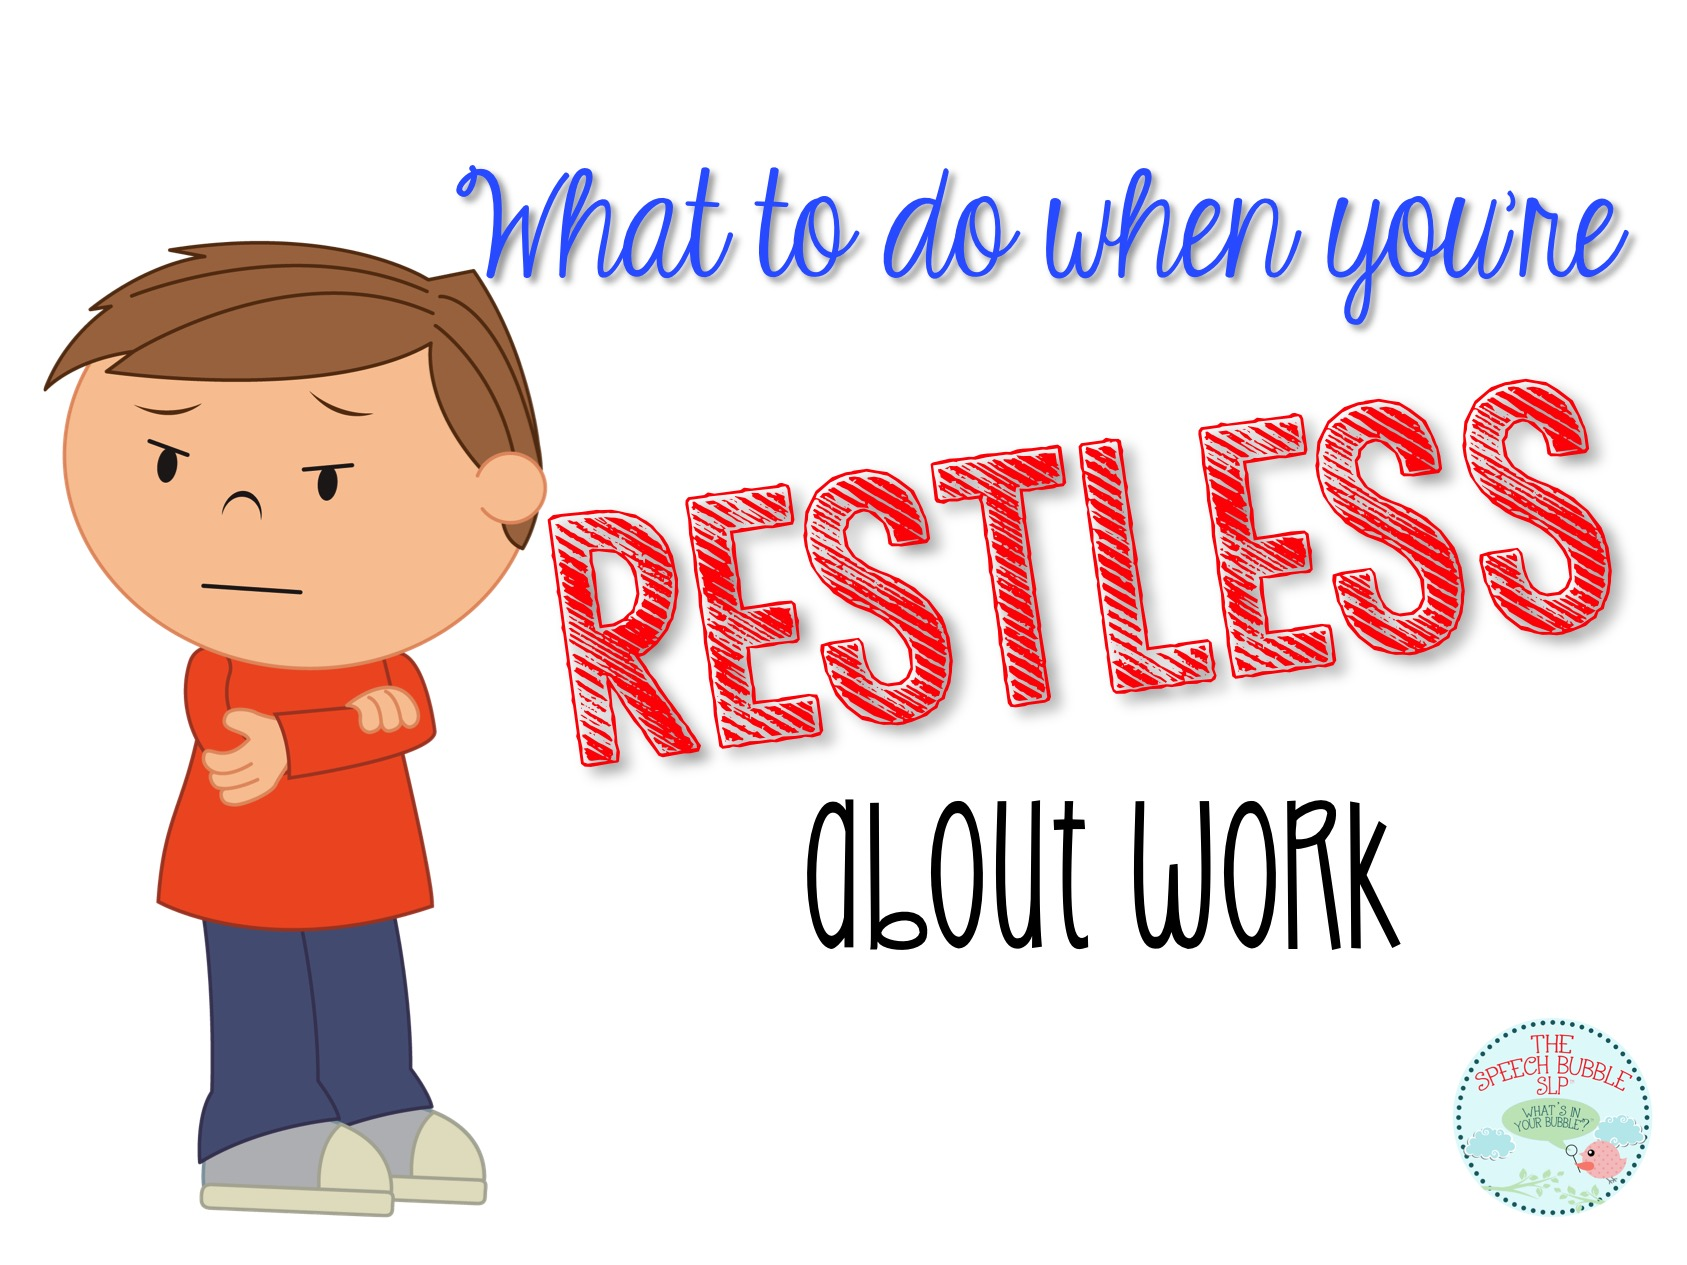 What to do when you're restless about work